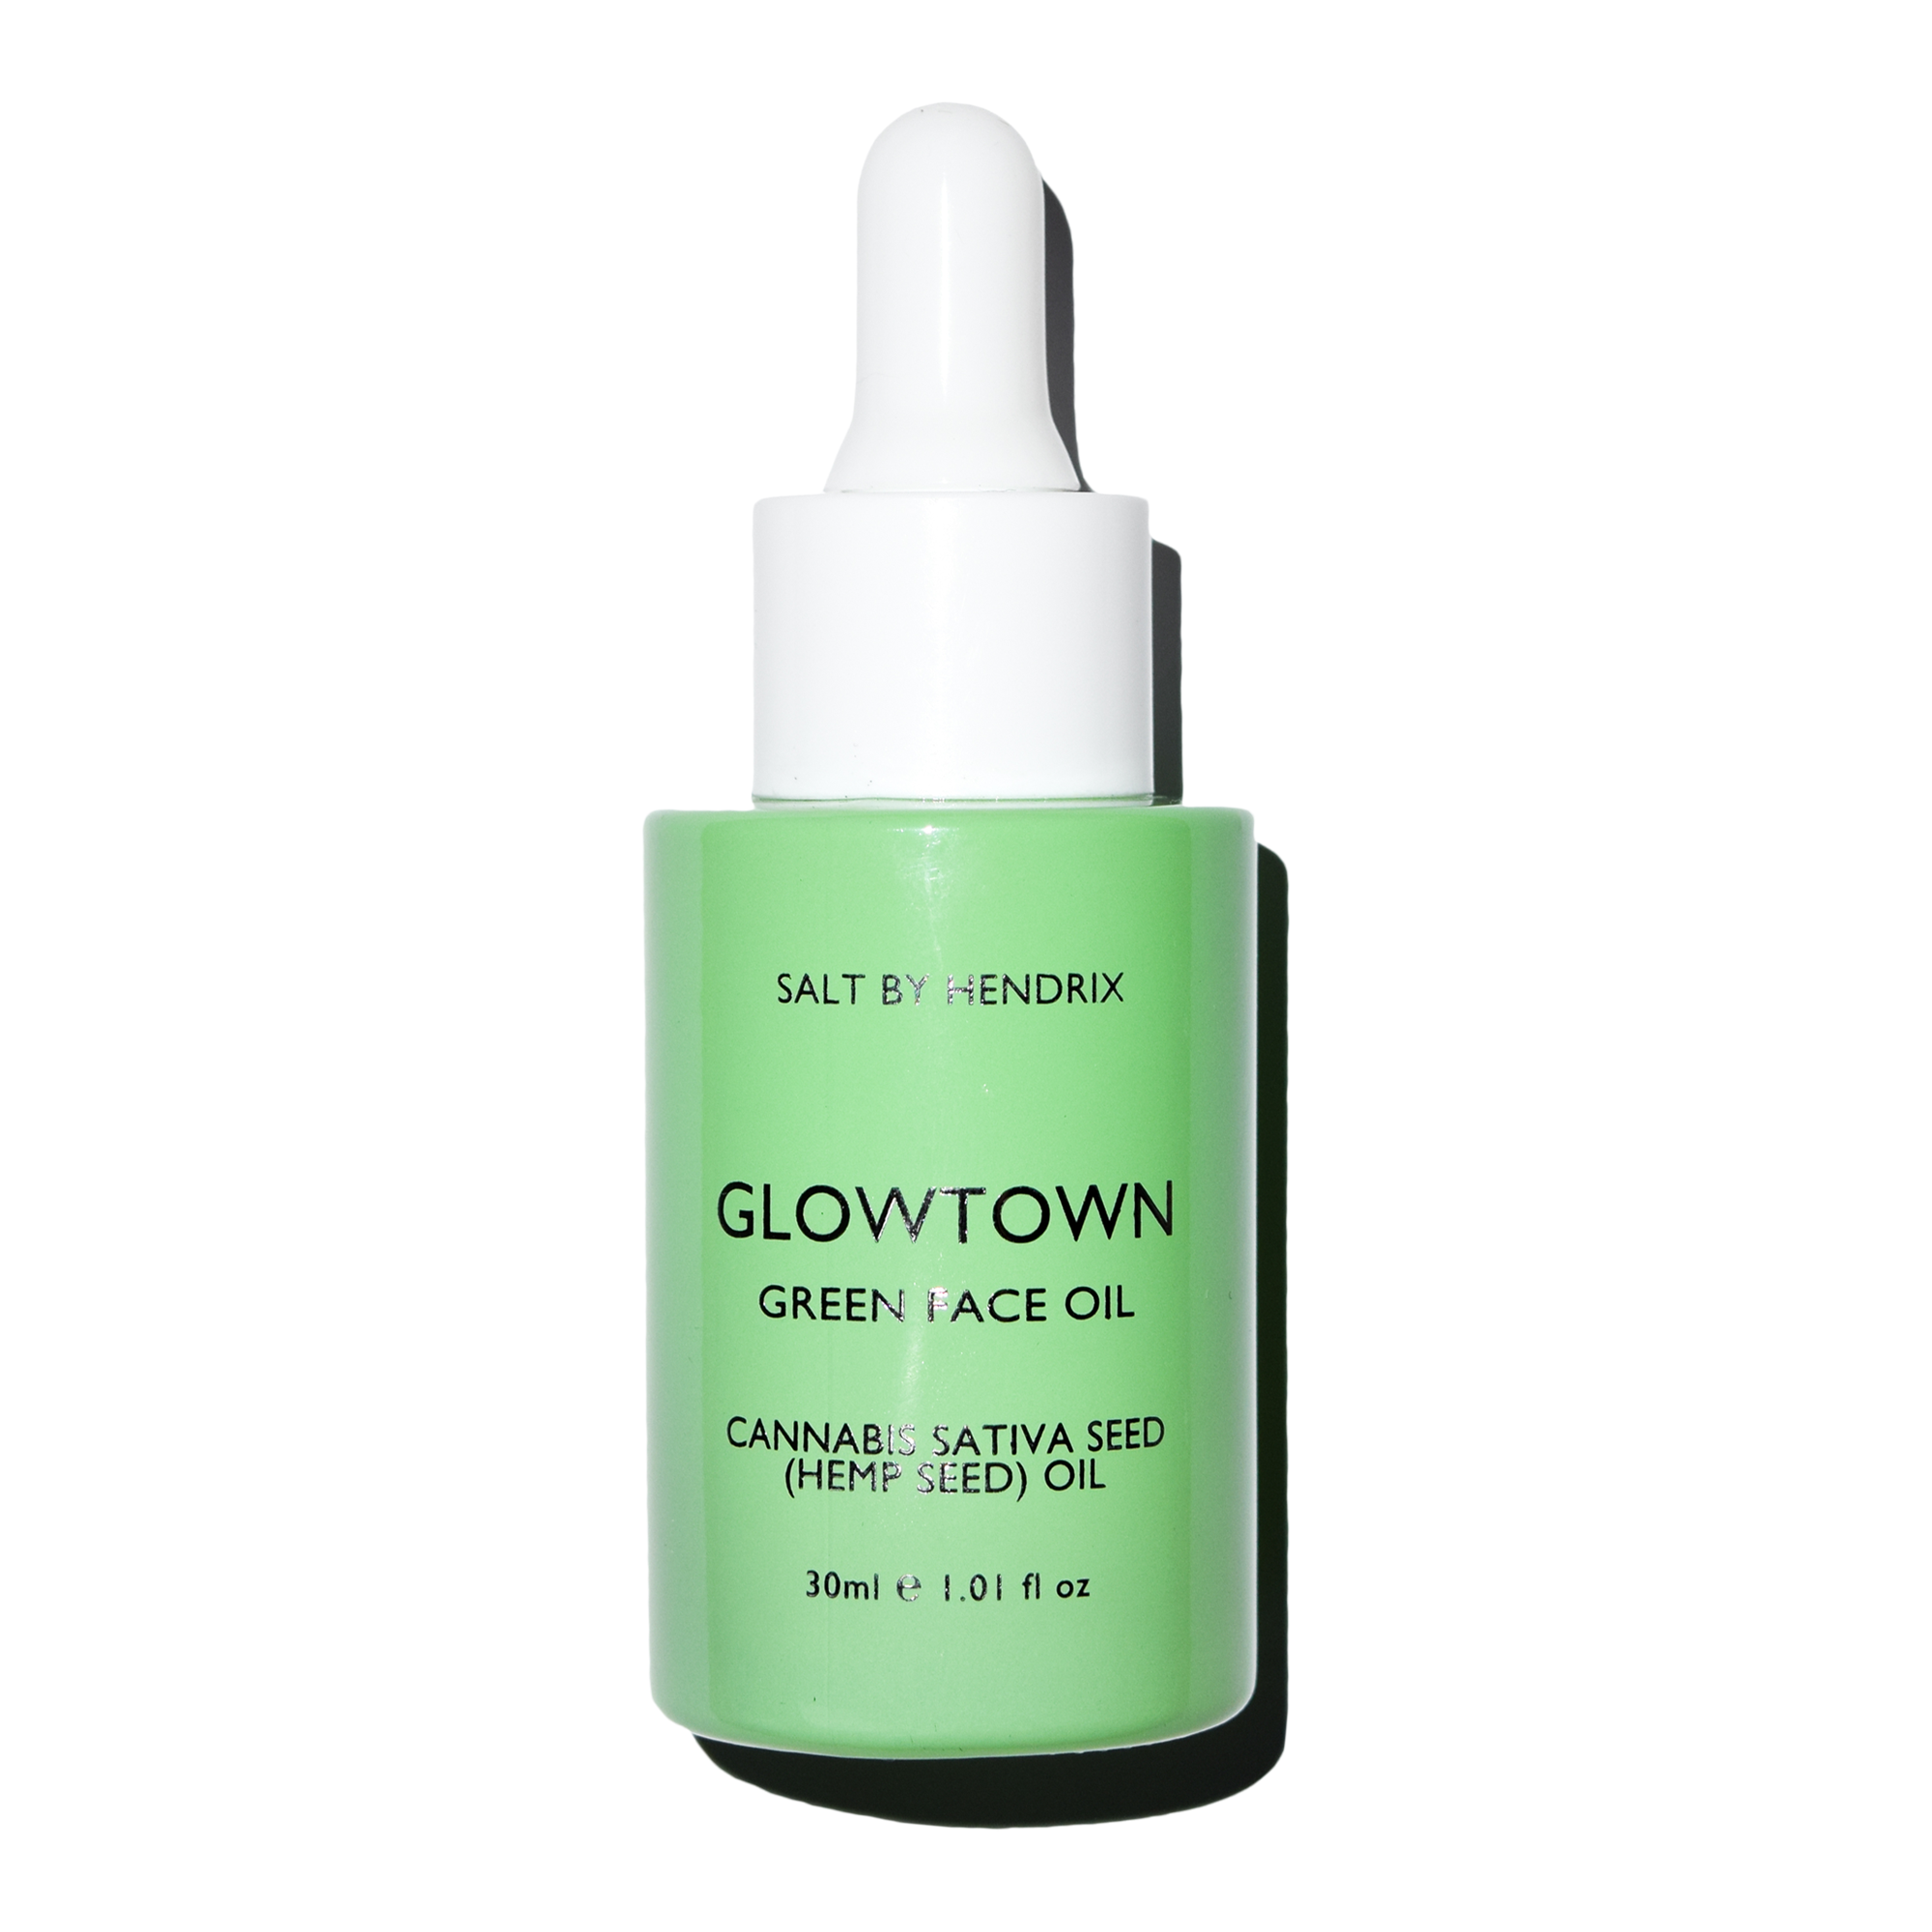 Salt by Hendrix Glowtown Green Face Oil 30ml